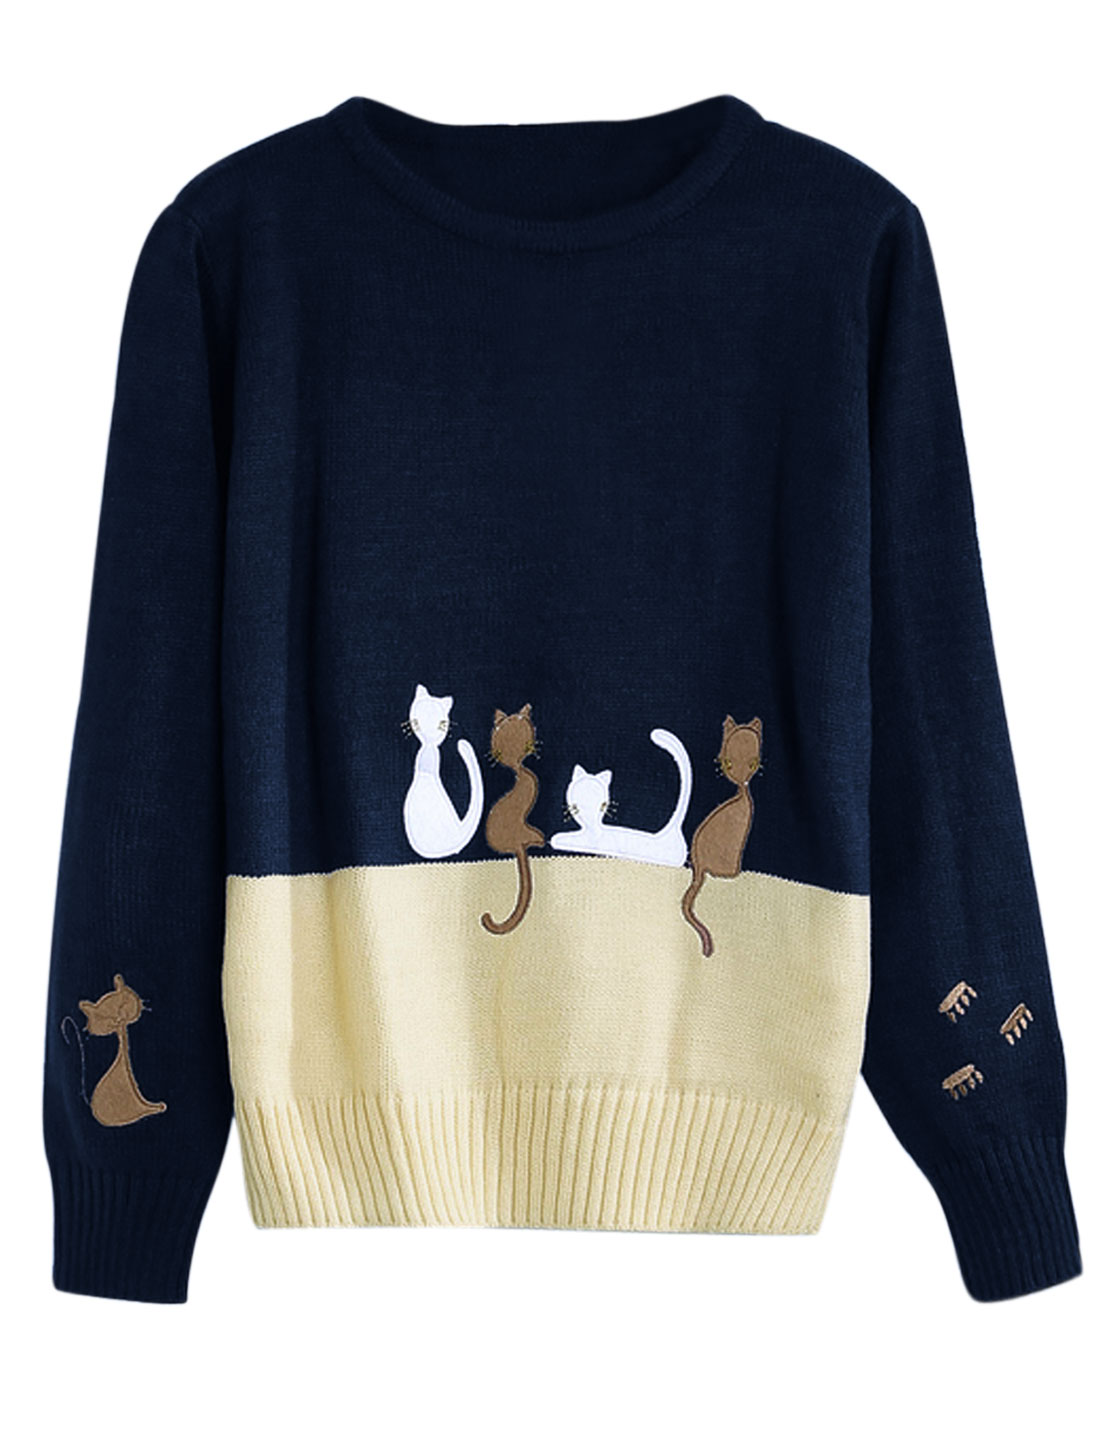 Woman Cats Stitching Contrast Color Round Neck Knitwear Pullover Navy Blue XS